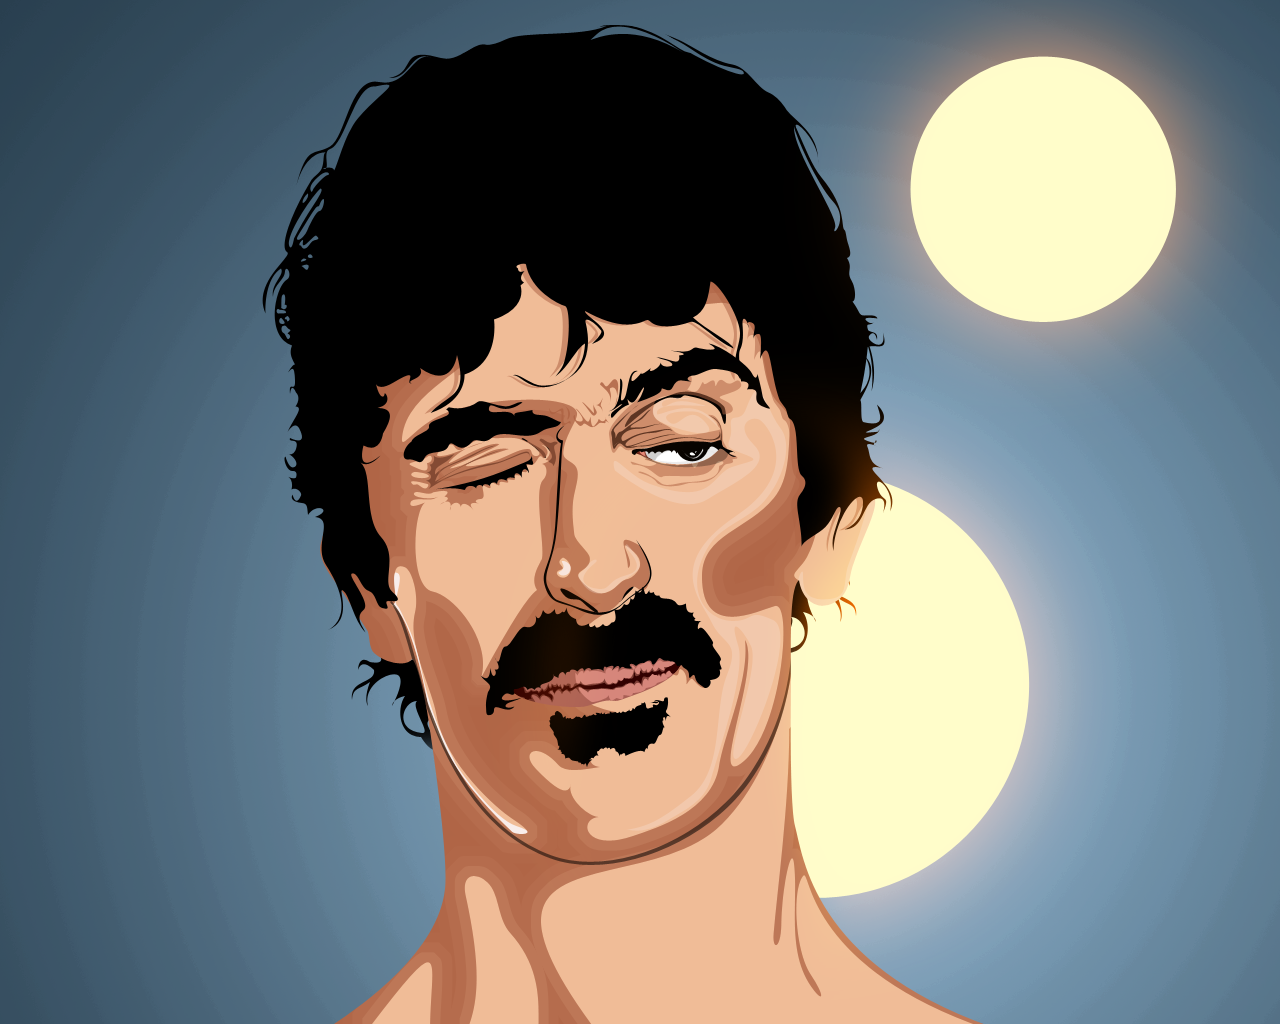 Frank Zappa Wallpaper by ThePlumber702 on DeviantArt